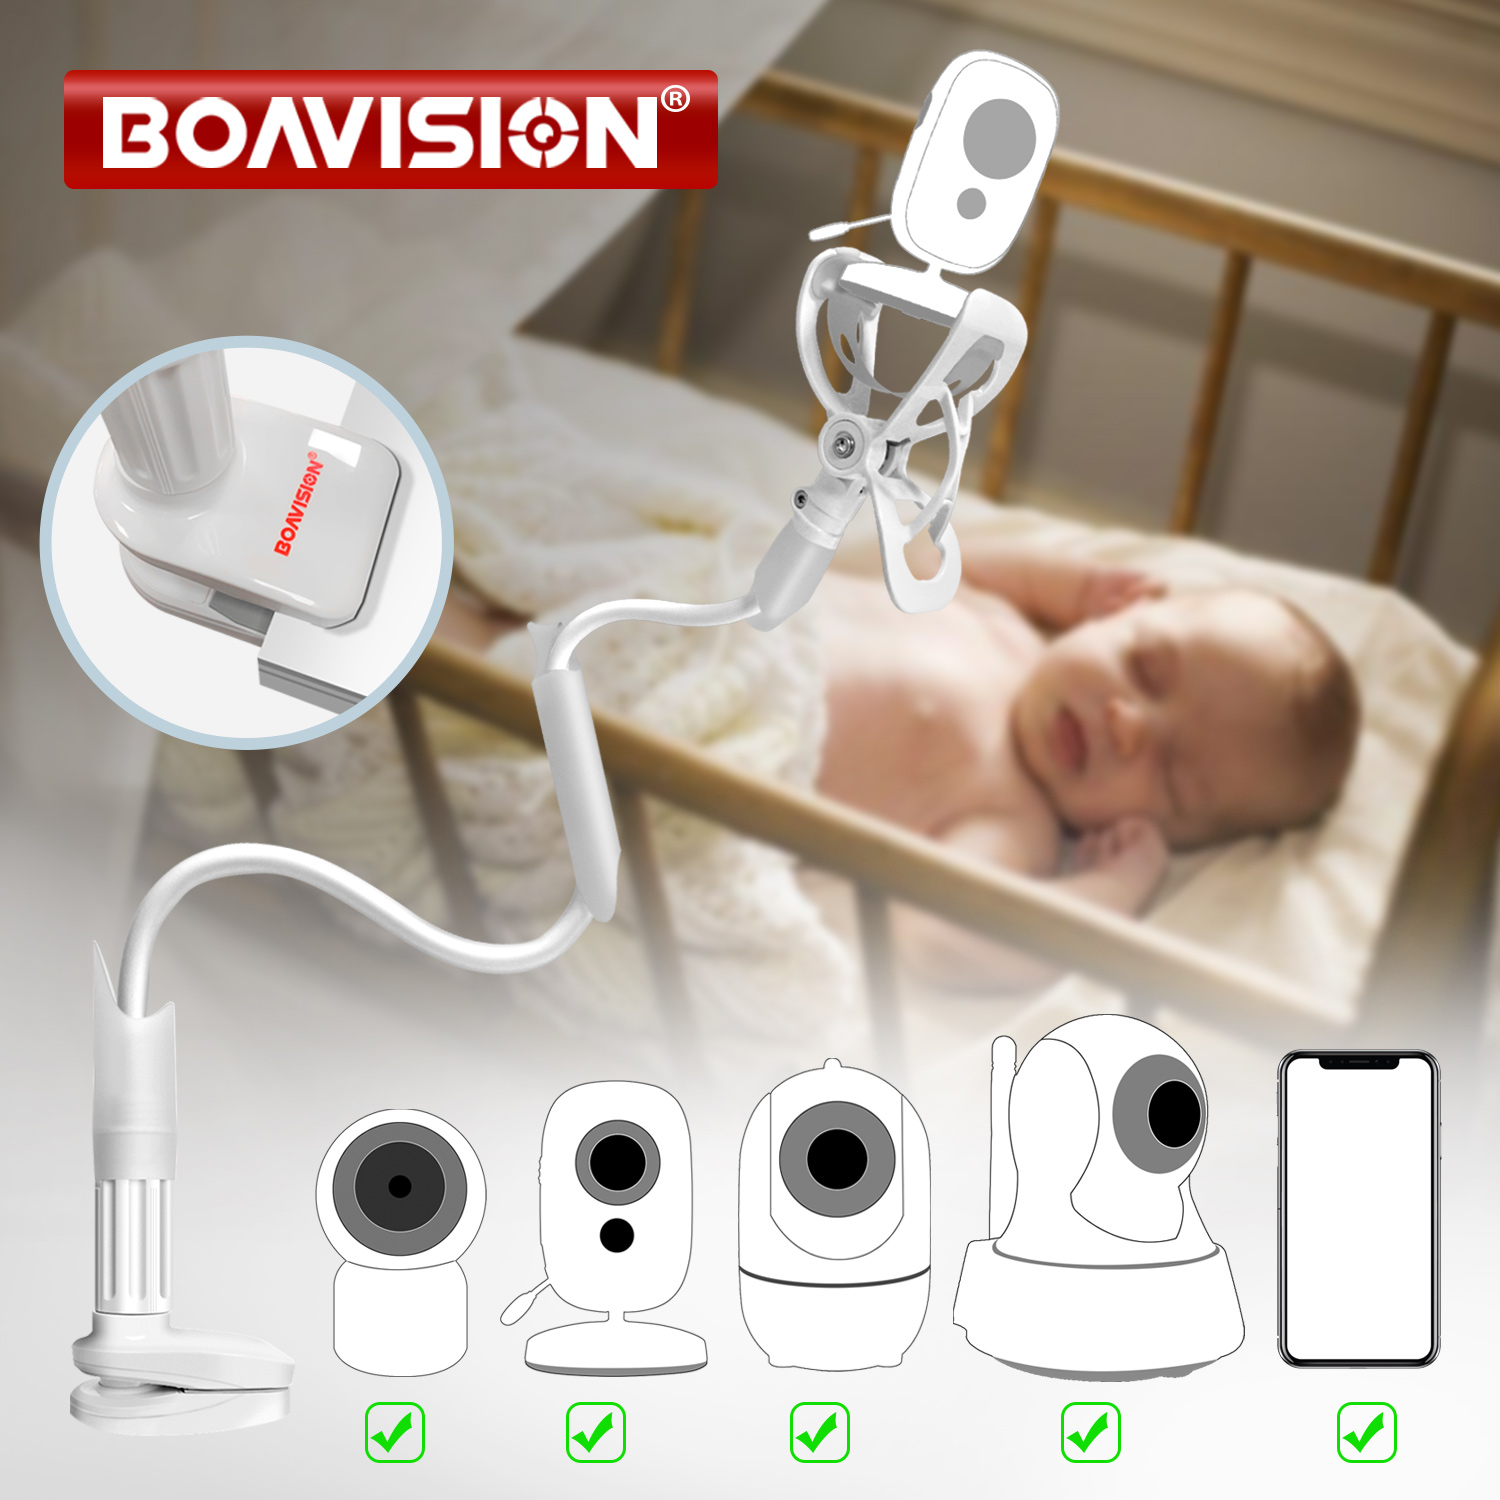 Multifunction Universal Phone Holder Stand Bed Lazy Cradle Long Arm Adjustable 85cm Baby Monitor Wall Mount Camera For Shelf X5|Baby Monitors|   - AliExpress